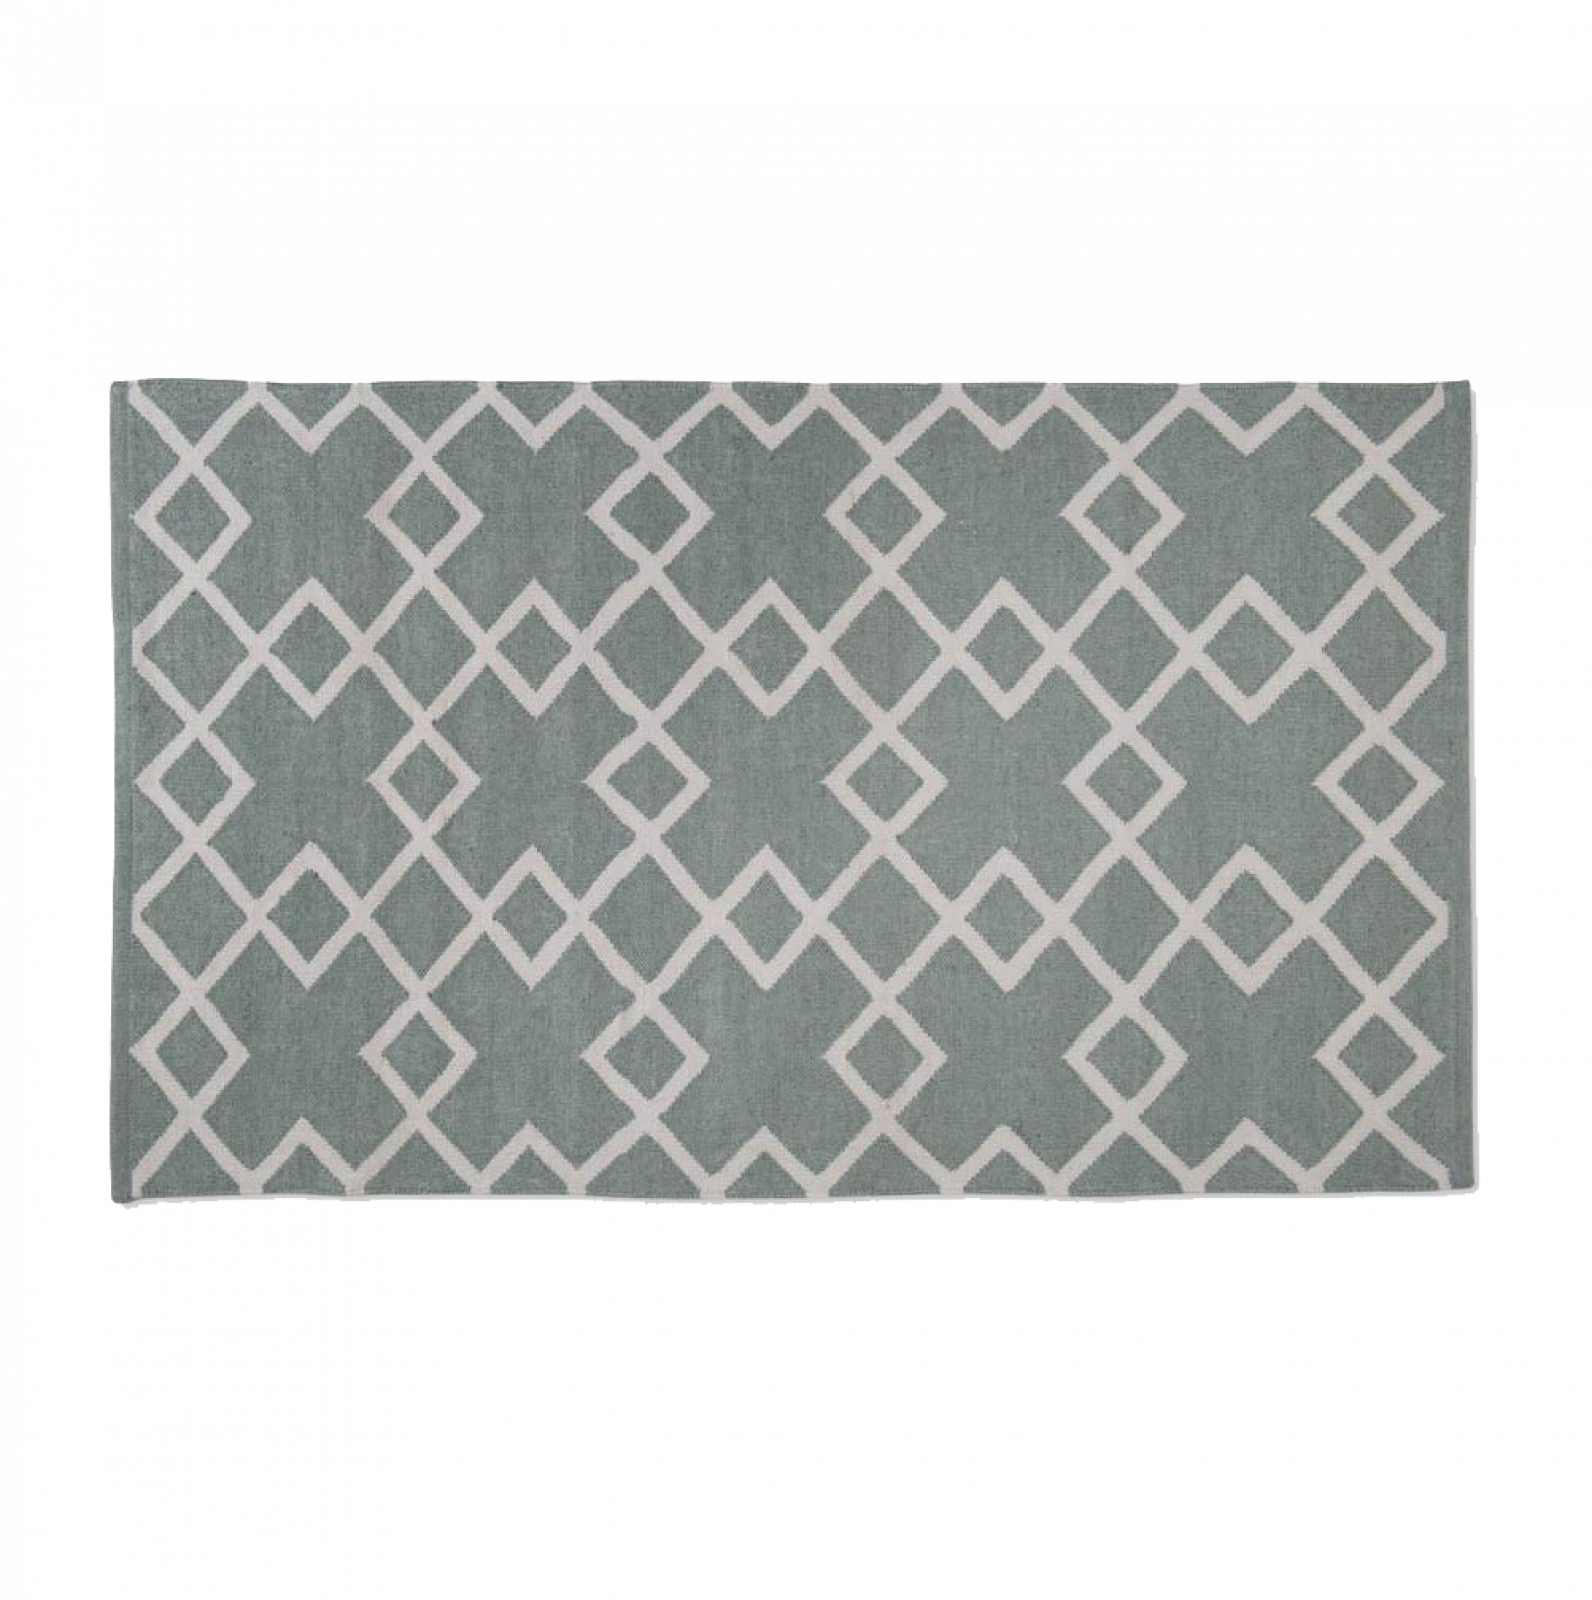 Juno - Dove Grey - 110cm x 60cm Recycled Bottle Rug thumbnails